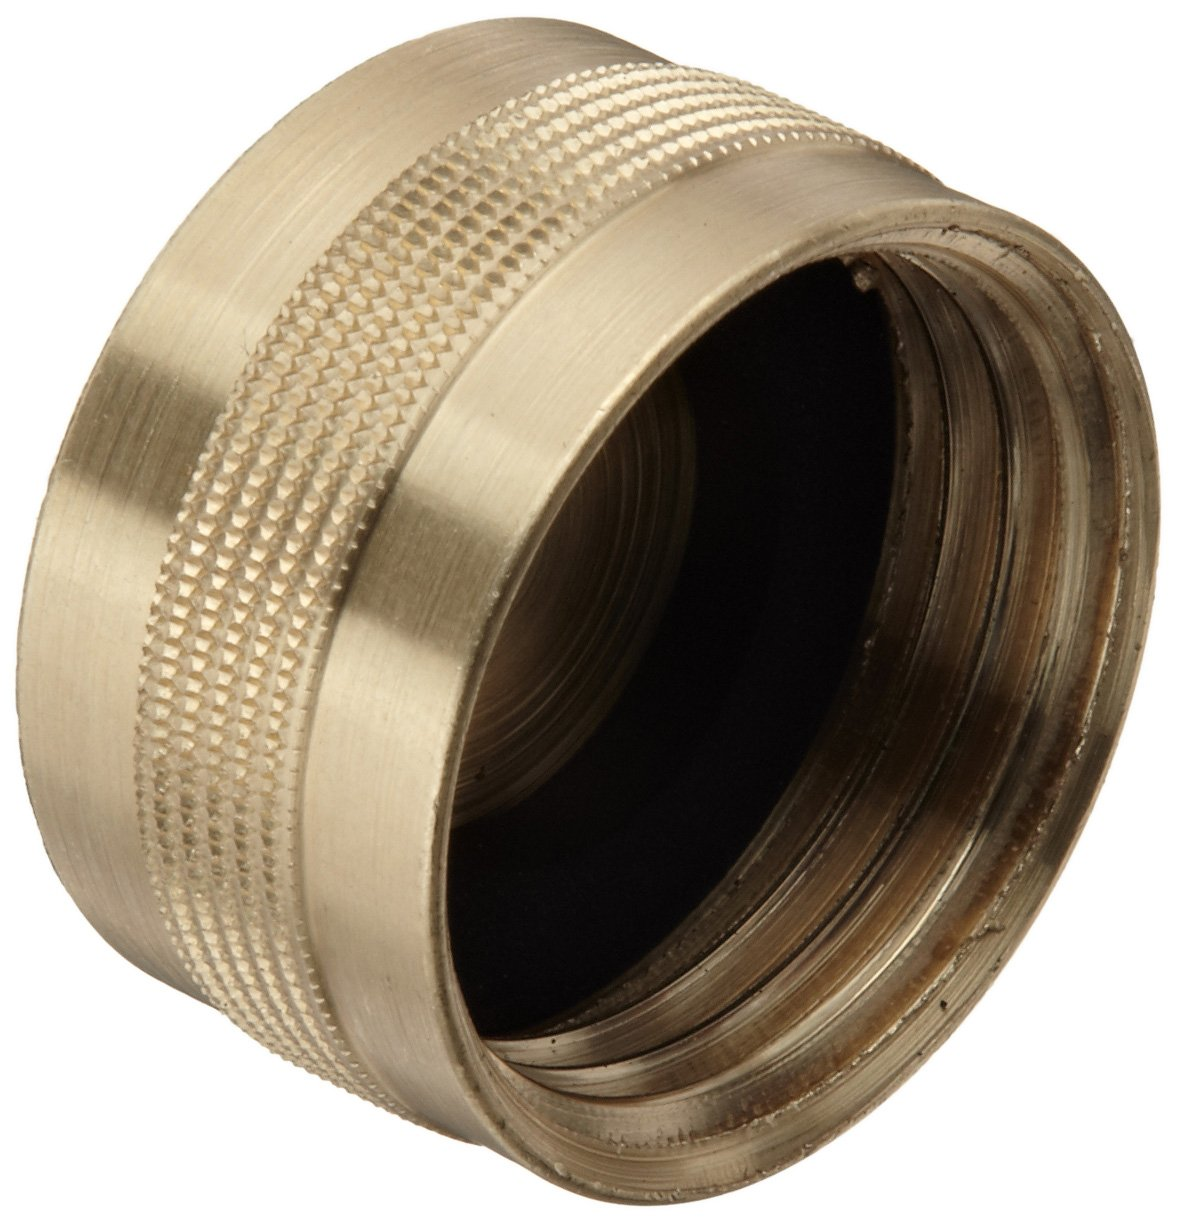 Dixon GHC7 Brass Garden Hose Fitting Cap 3//4 GHT Female